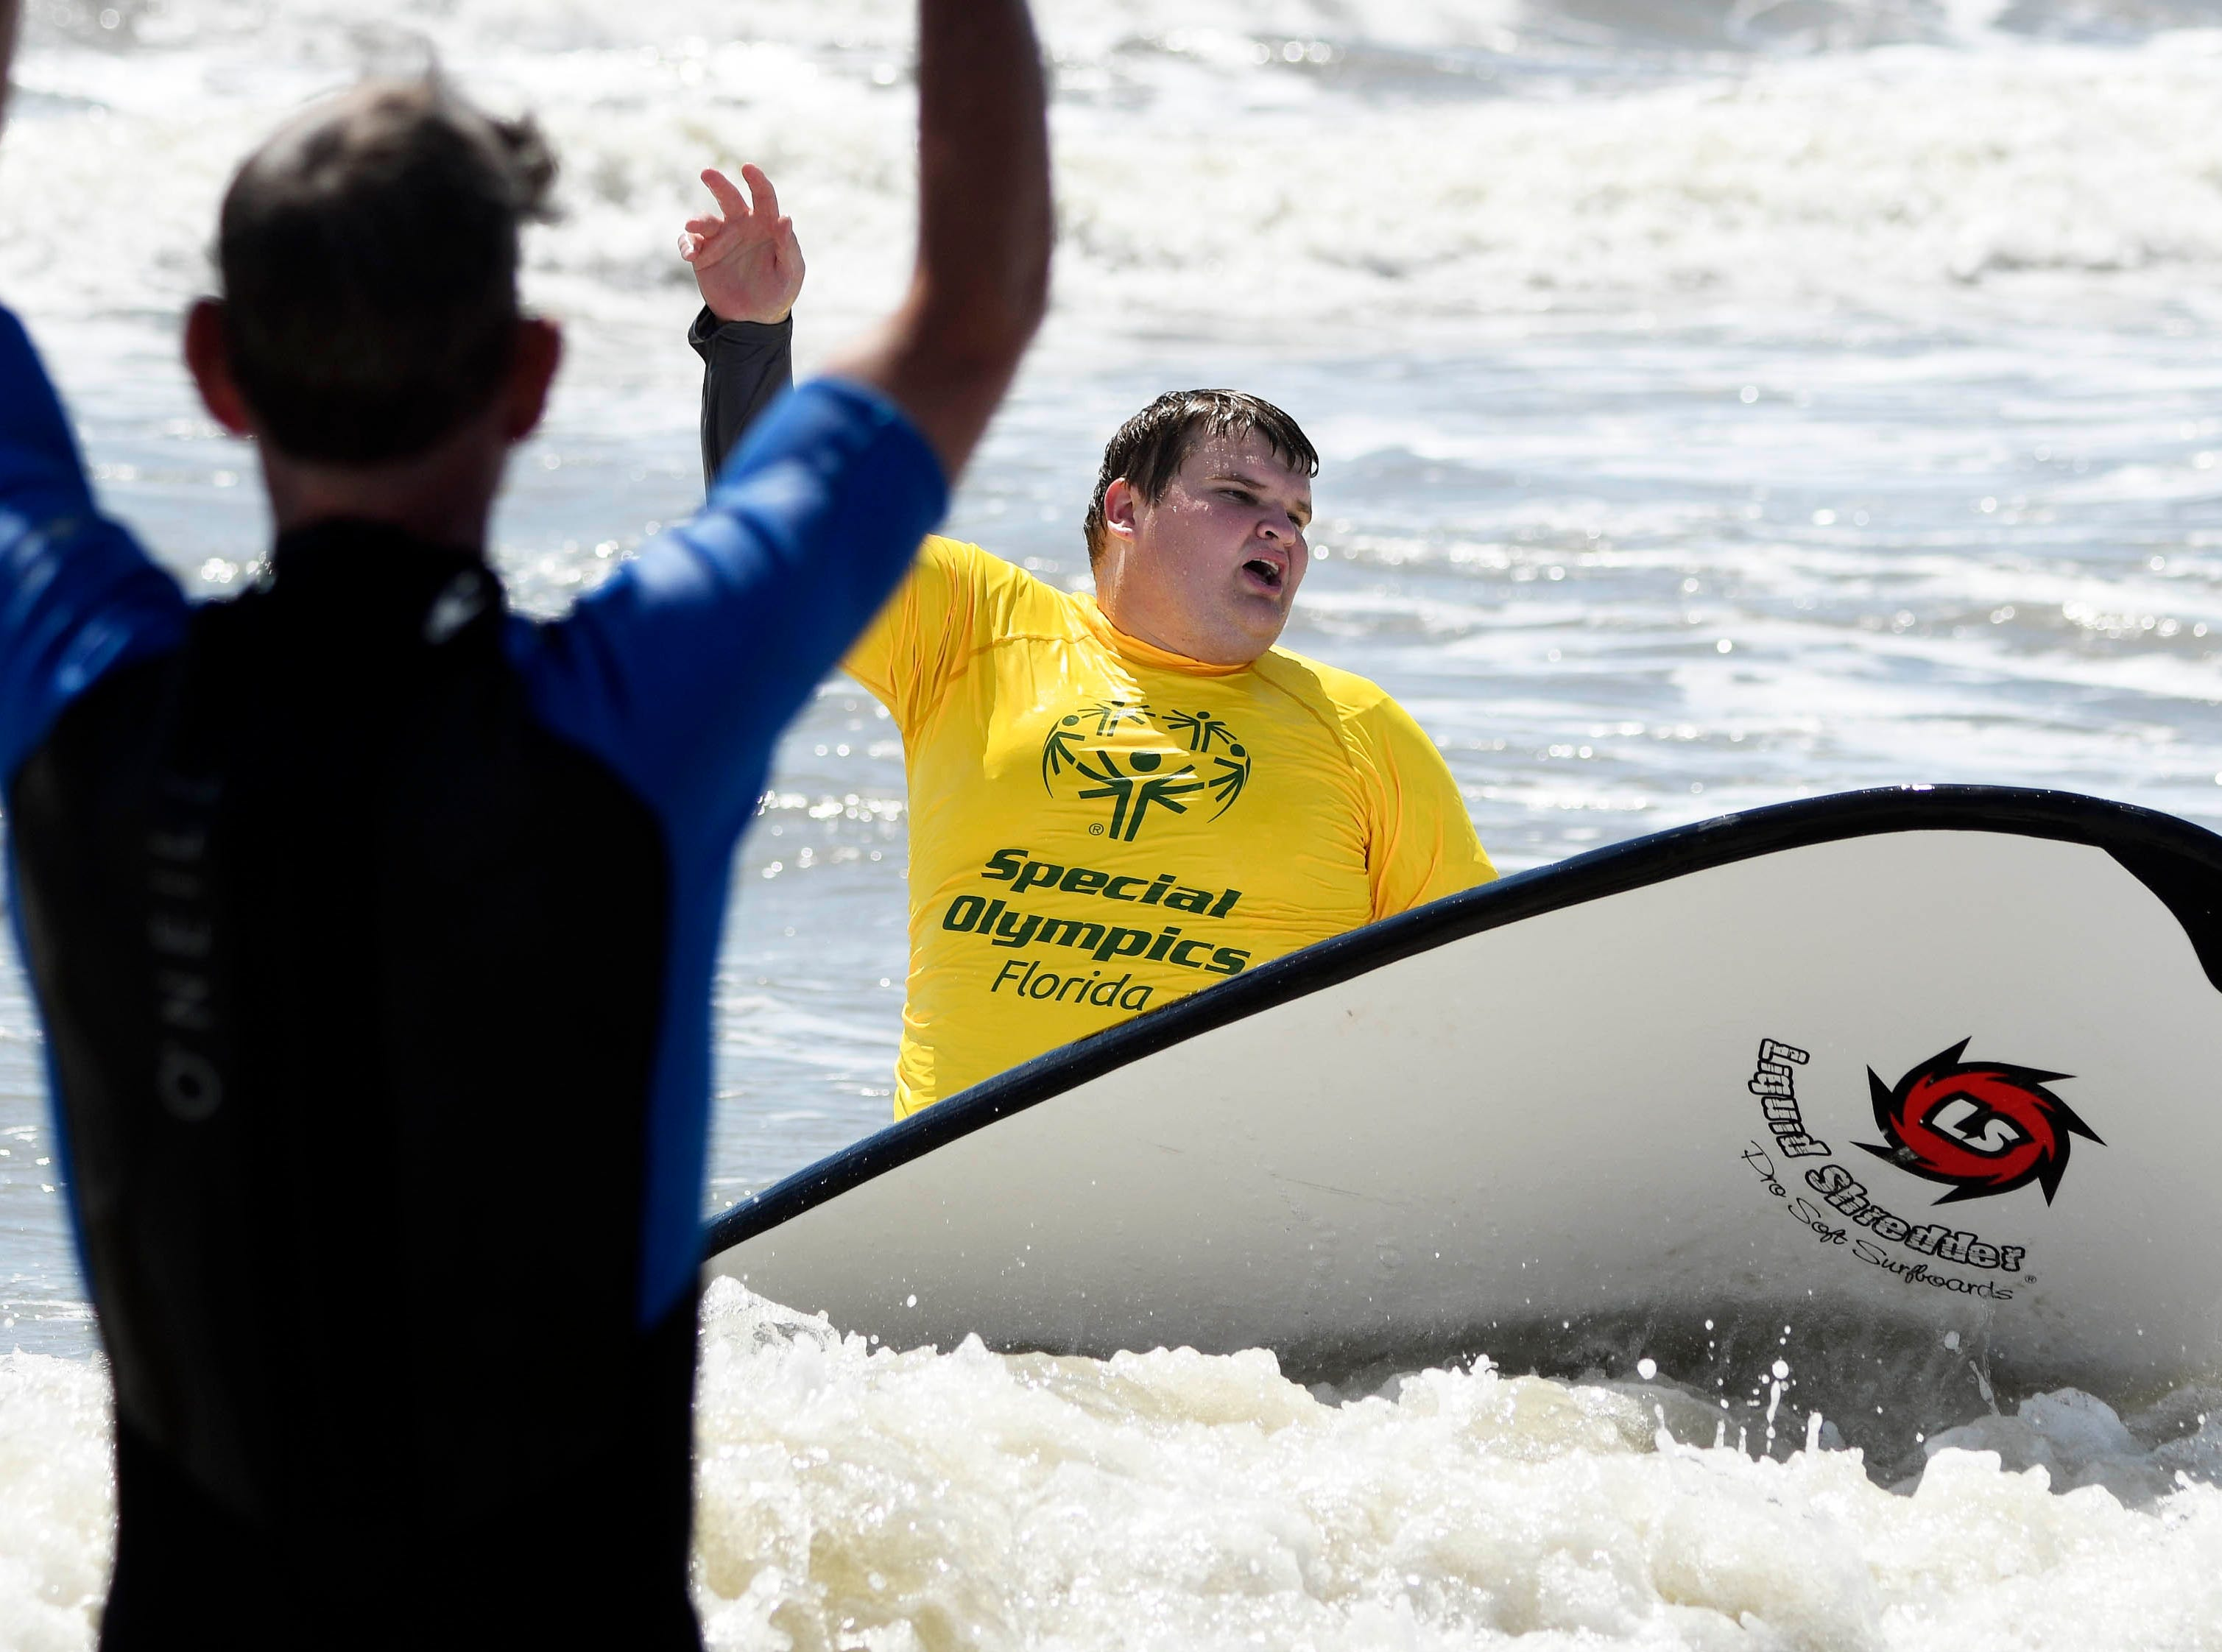 Jacob Nehus participates in the Special Olympics spring surfing festival at Shepard Park.